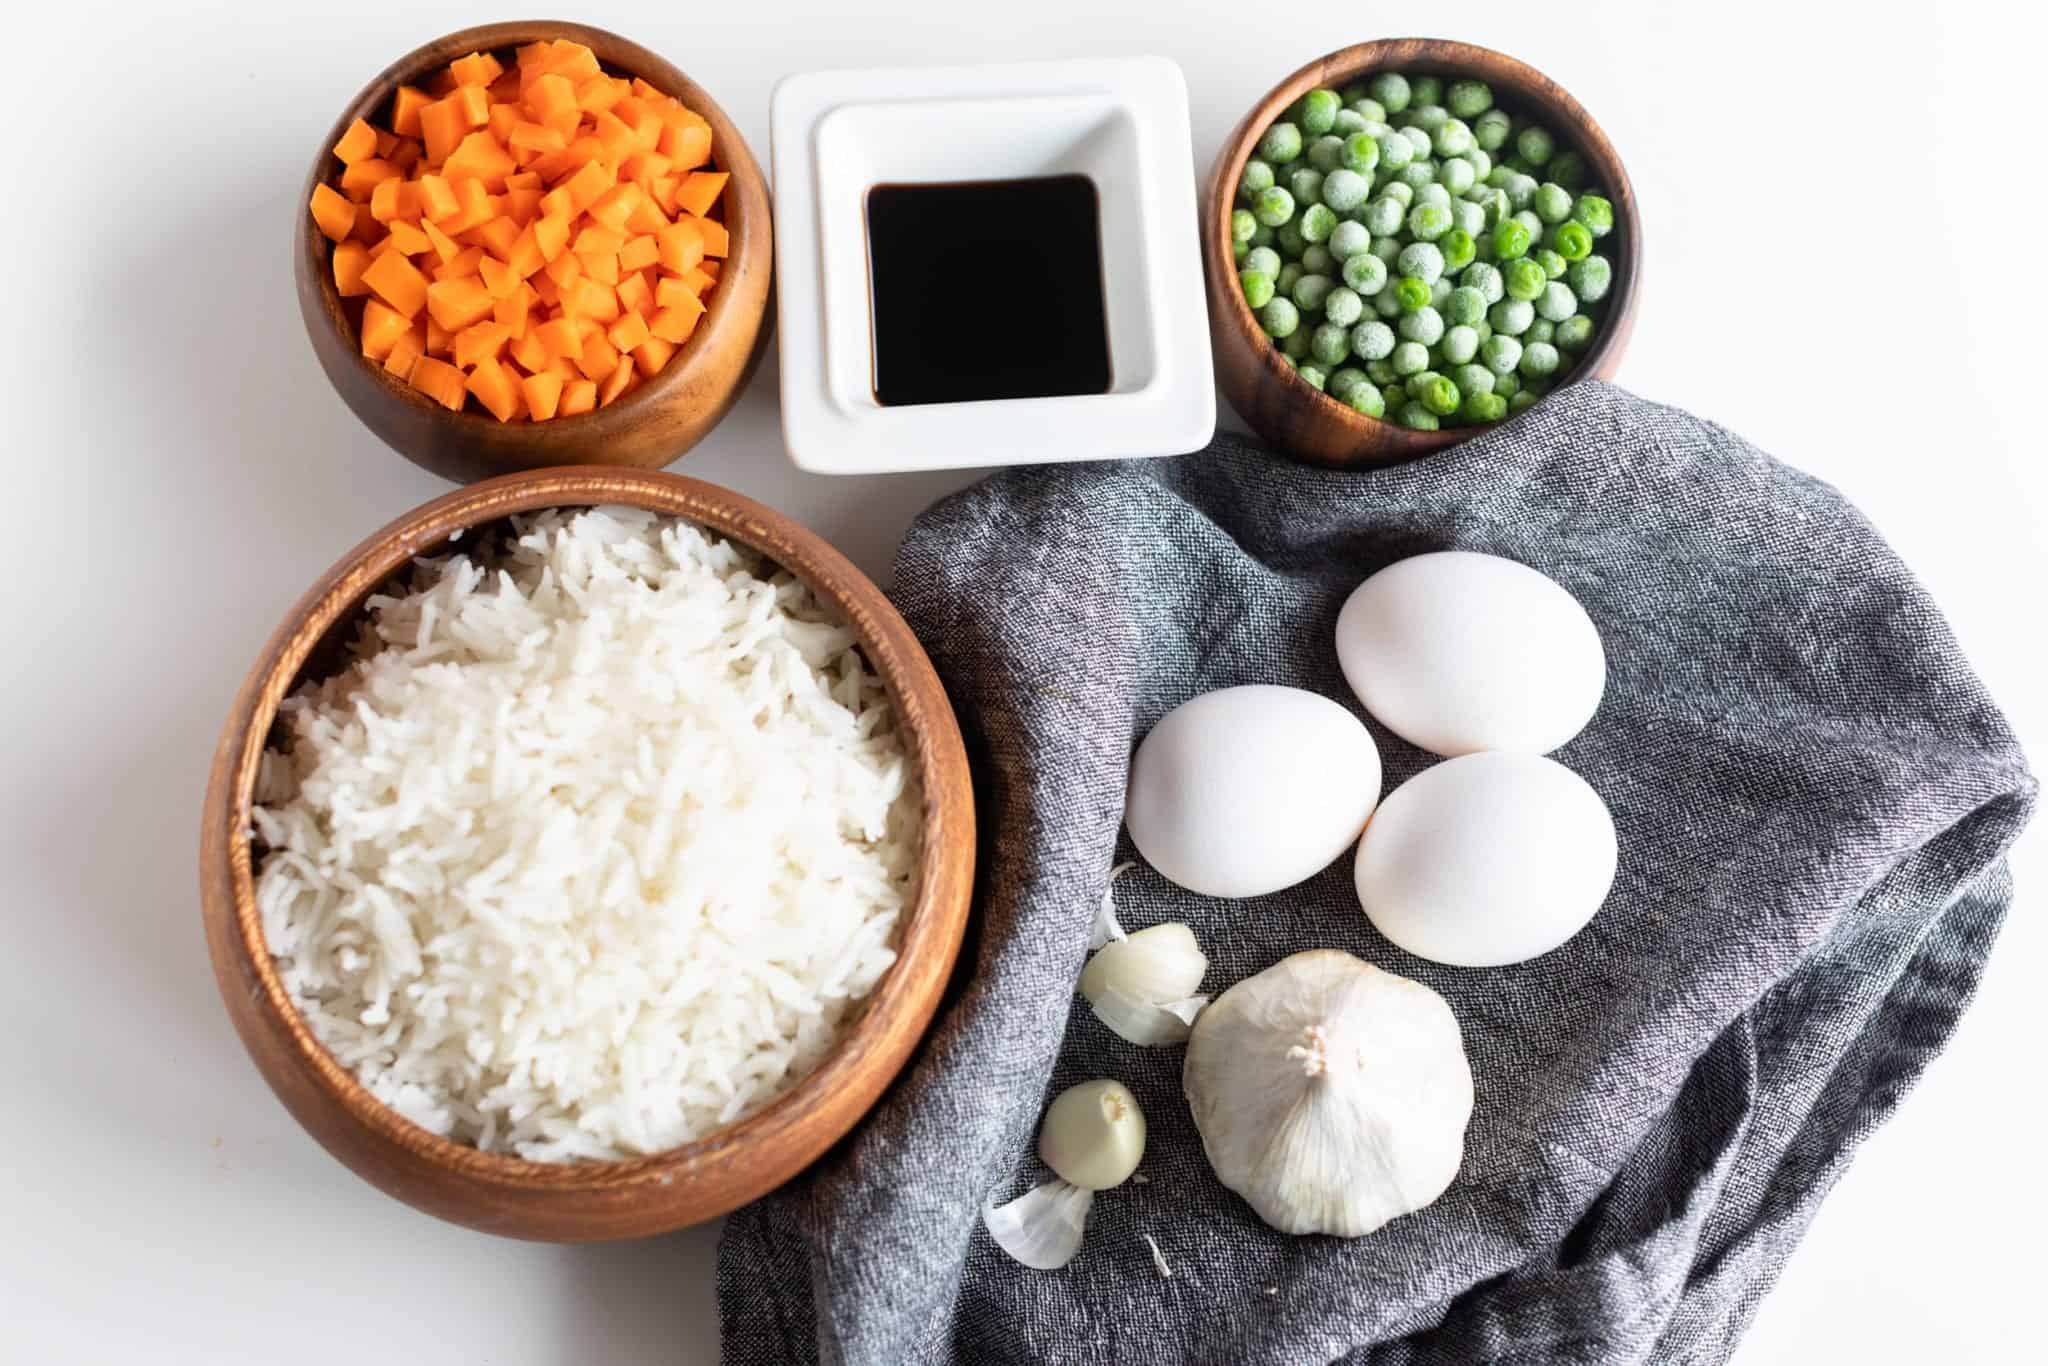 picture of prepped ingredients of make fried rice. Diced carrots, reduced sodium soy sauce, peas, cooked rice, eggs and garlic.